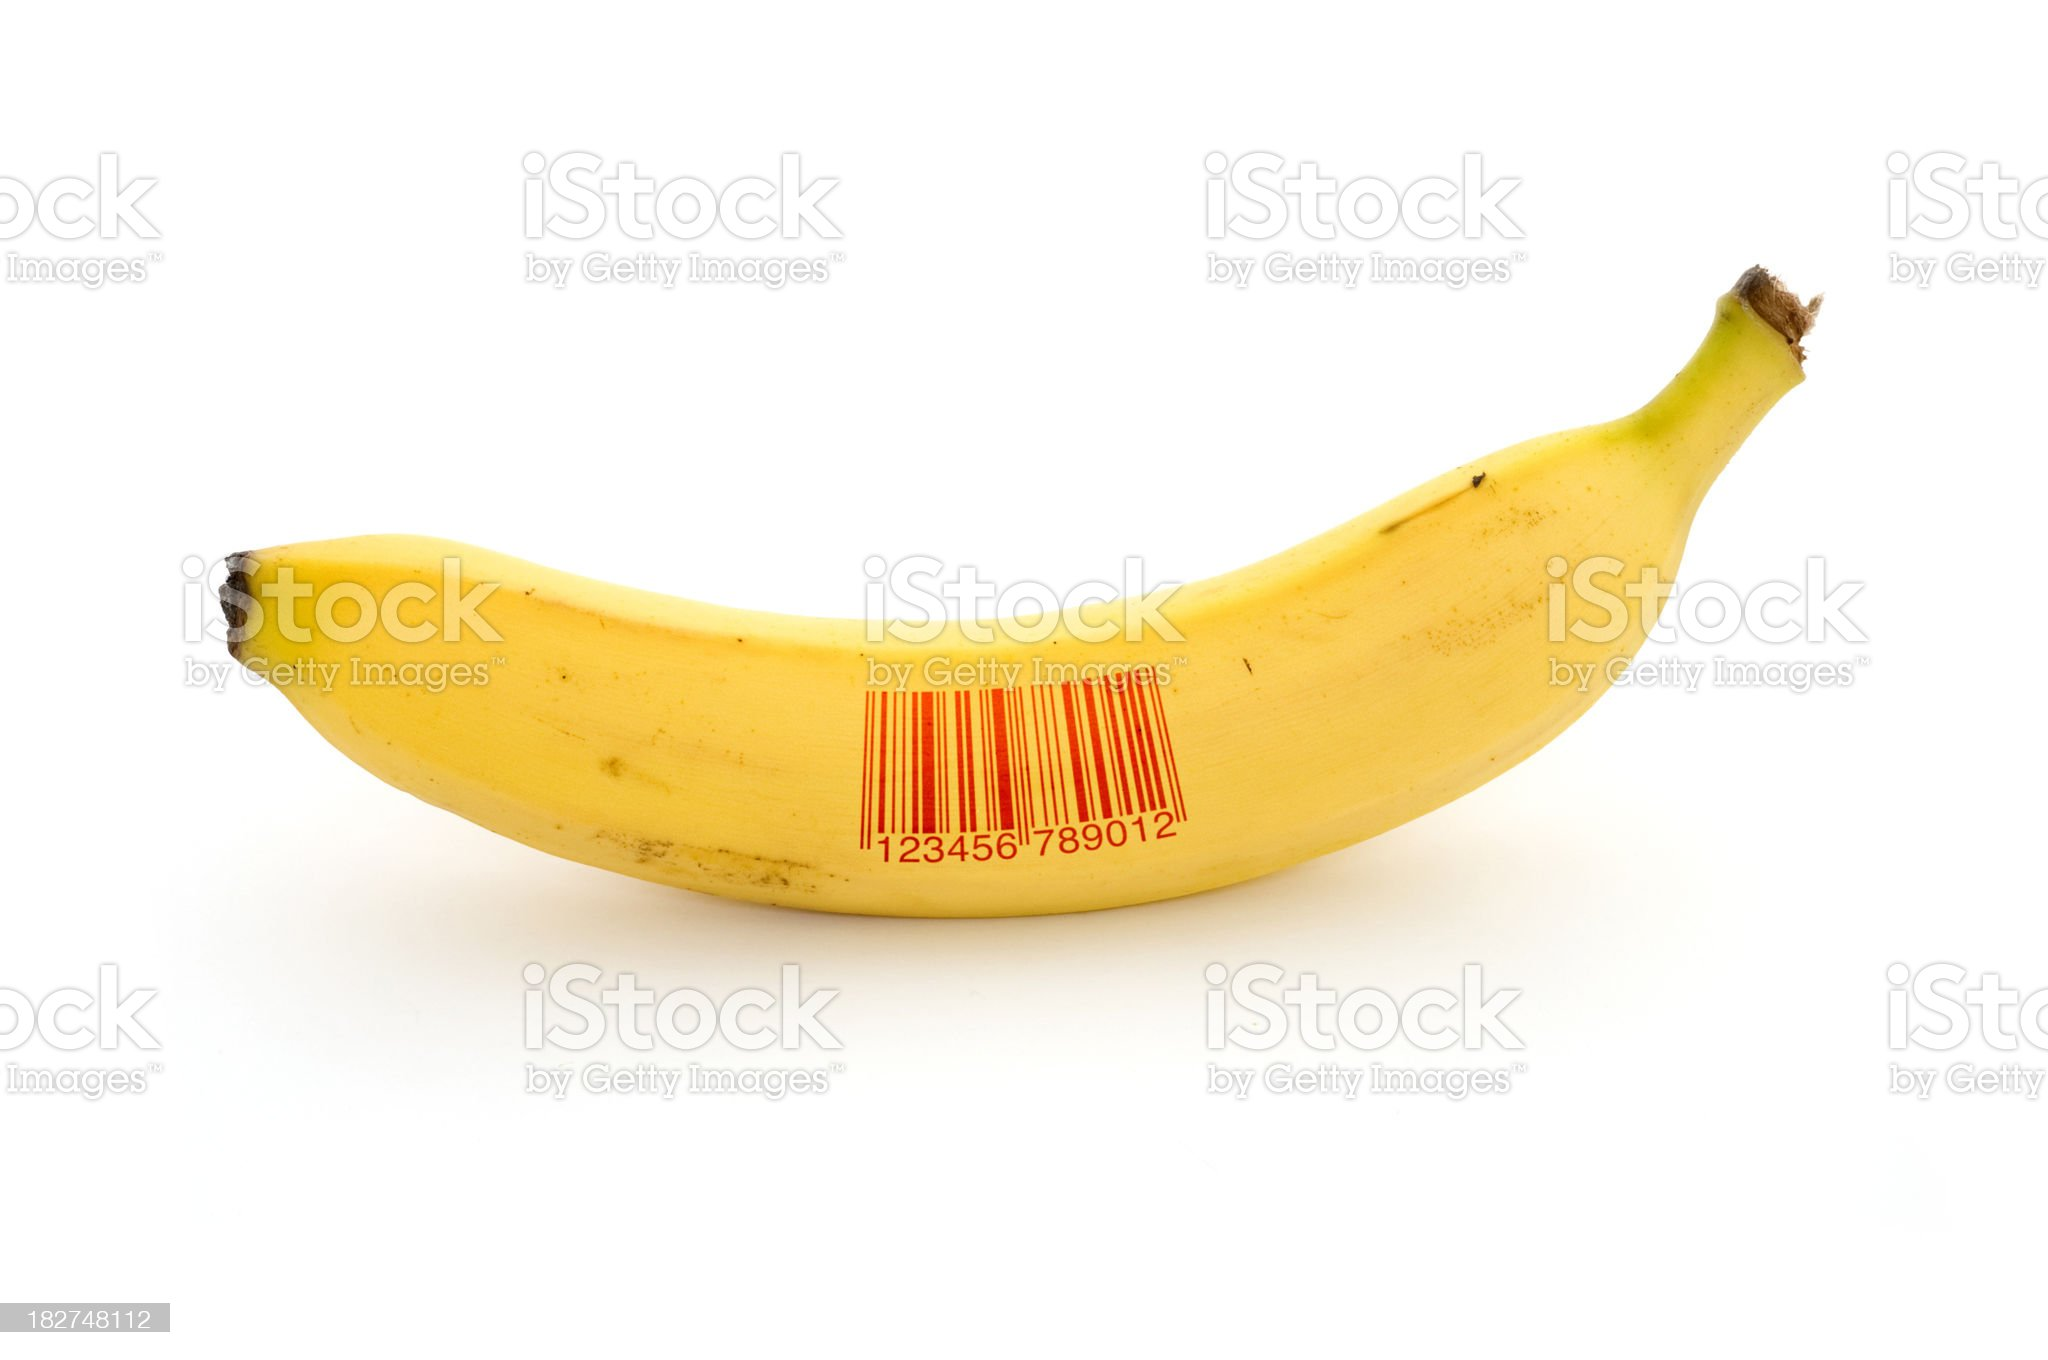 Genetic royalty-free stock photo